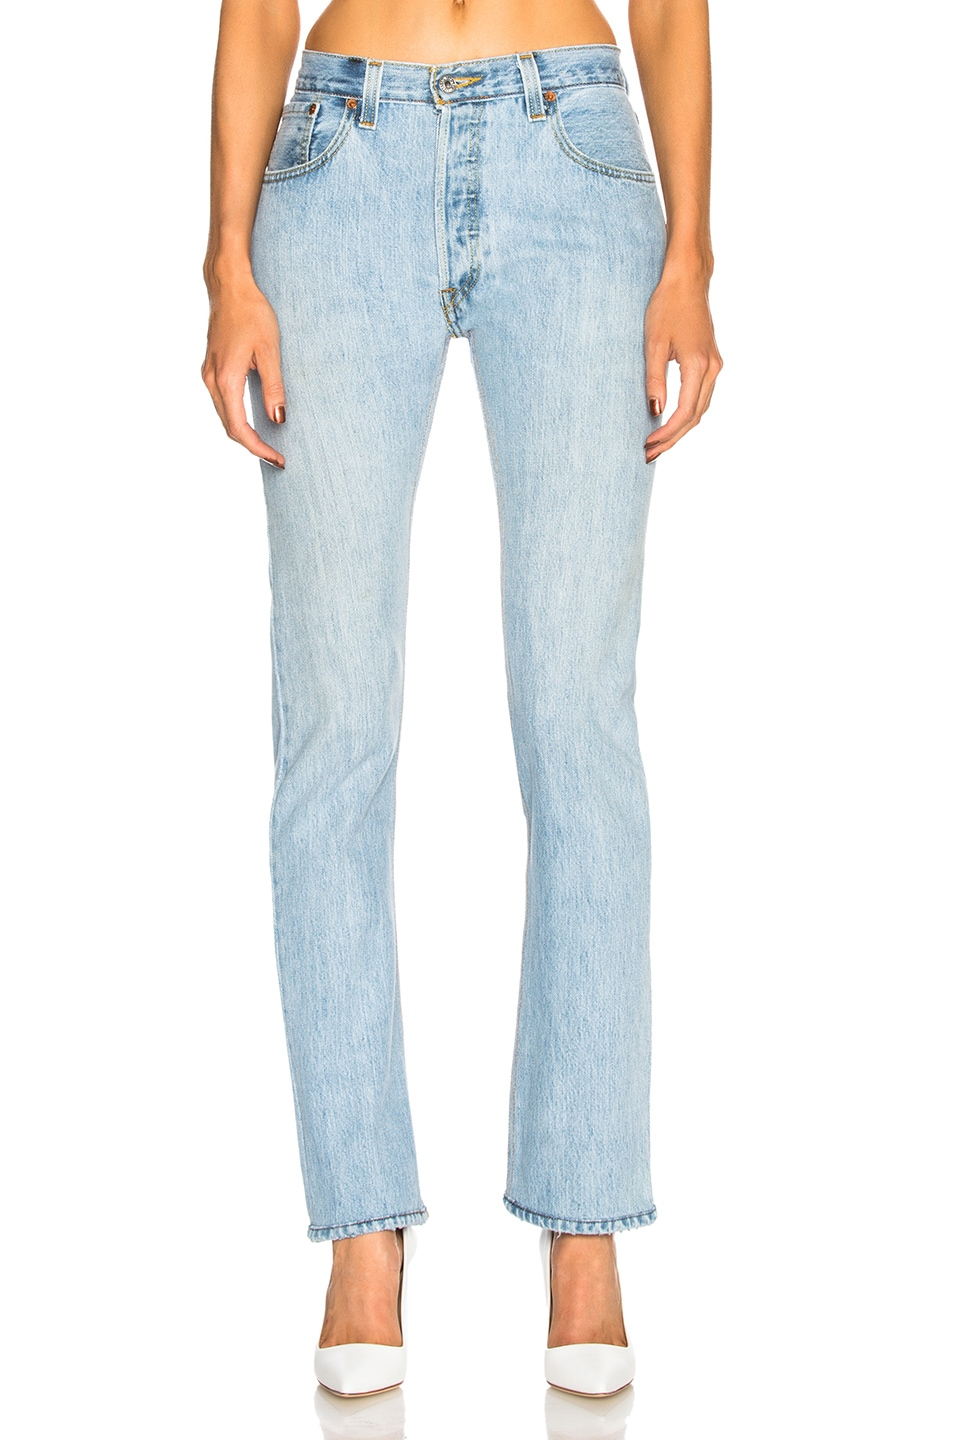 Image 1 of RE/DONE LEVI'S Cindy Crawford The Crawford High Rise in Indigo